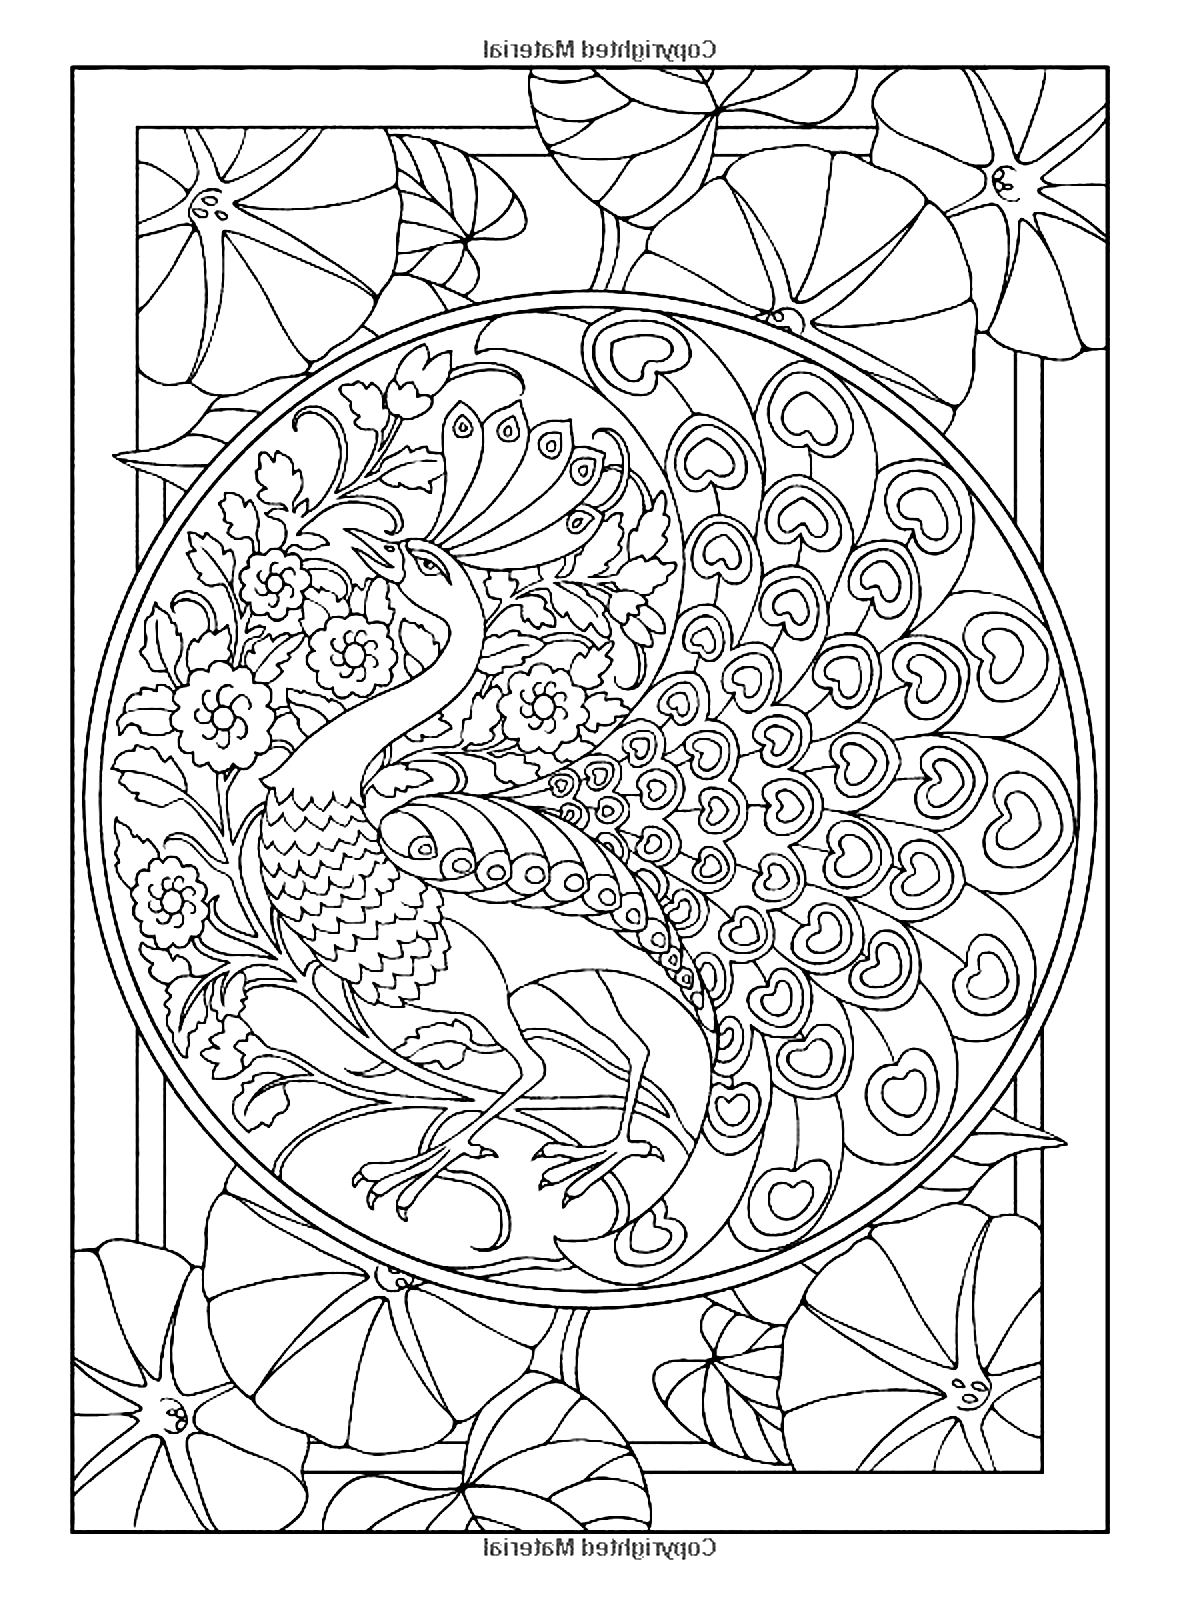 coloring art sheets doodle coloring pages best coloring pages for kids art sheets coloring